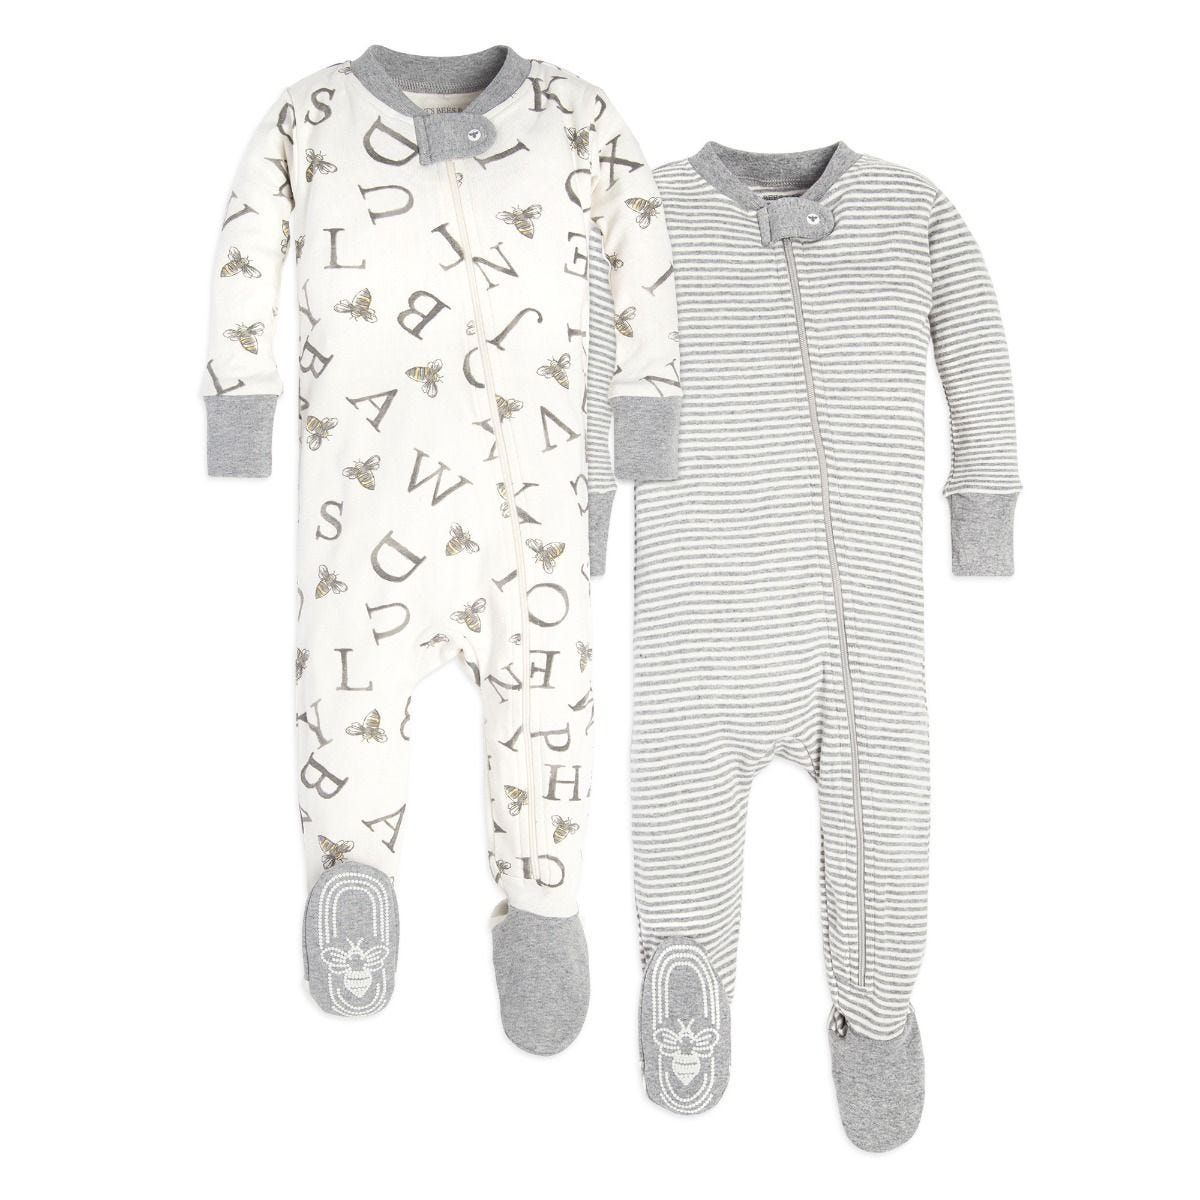 22904d4f6 Baby Set of 2 Organic Cotton Zip Front Footed Pajamas